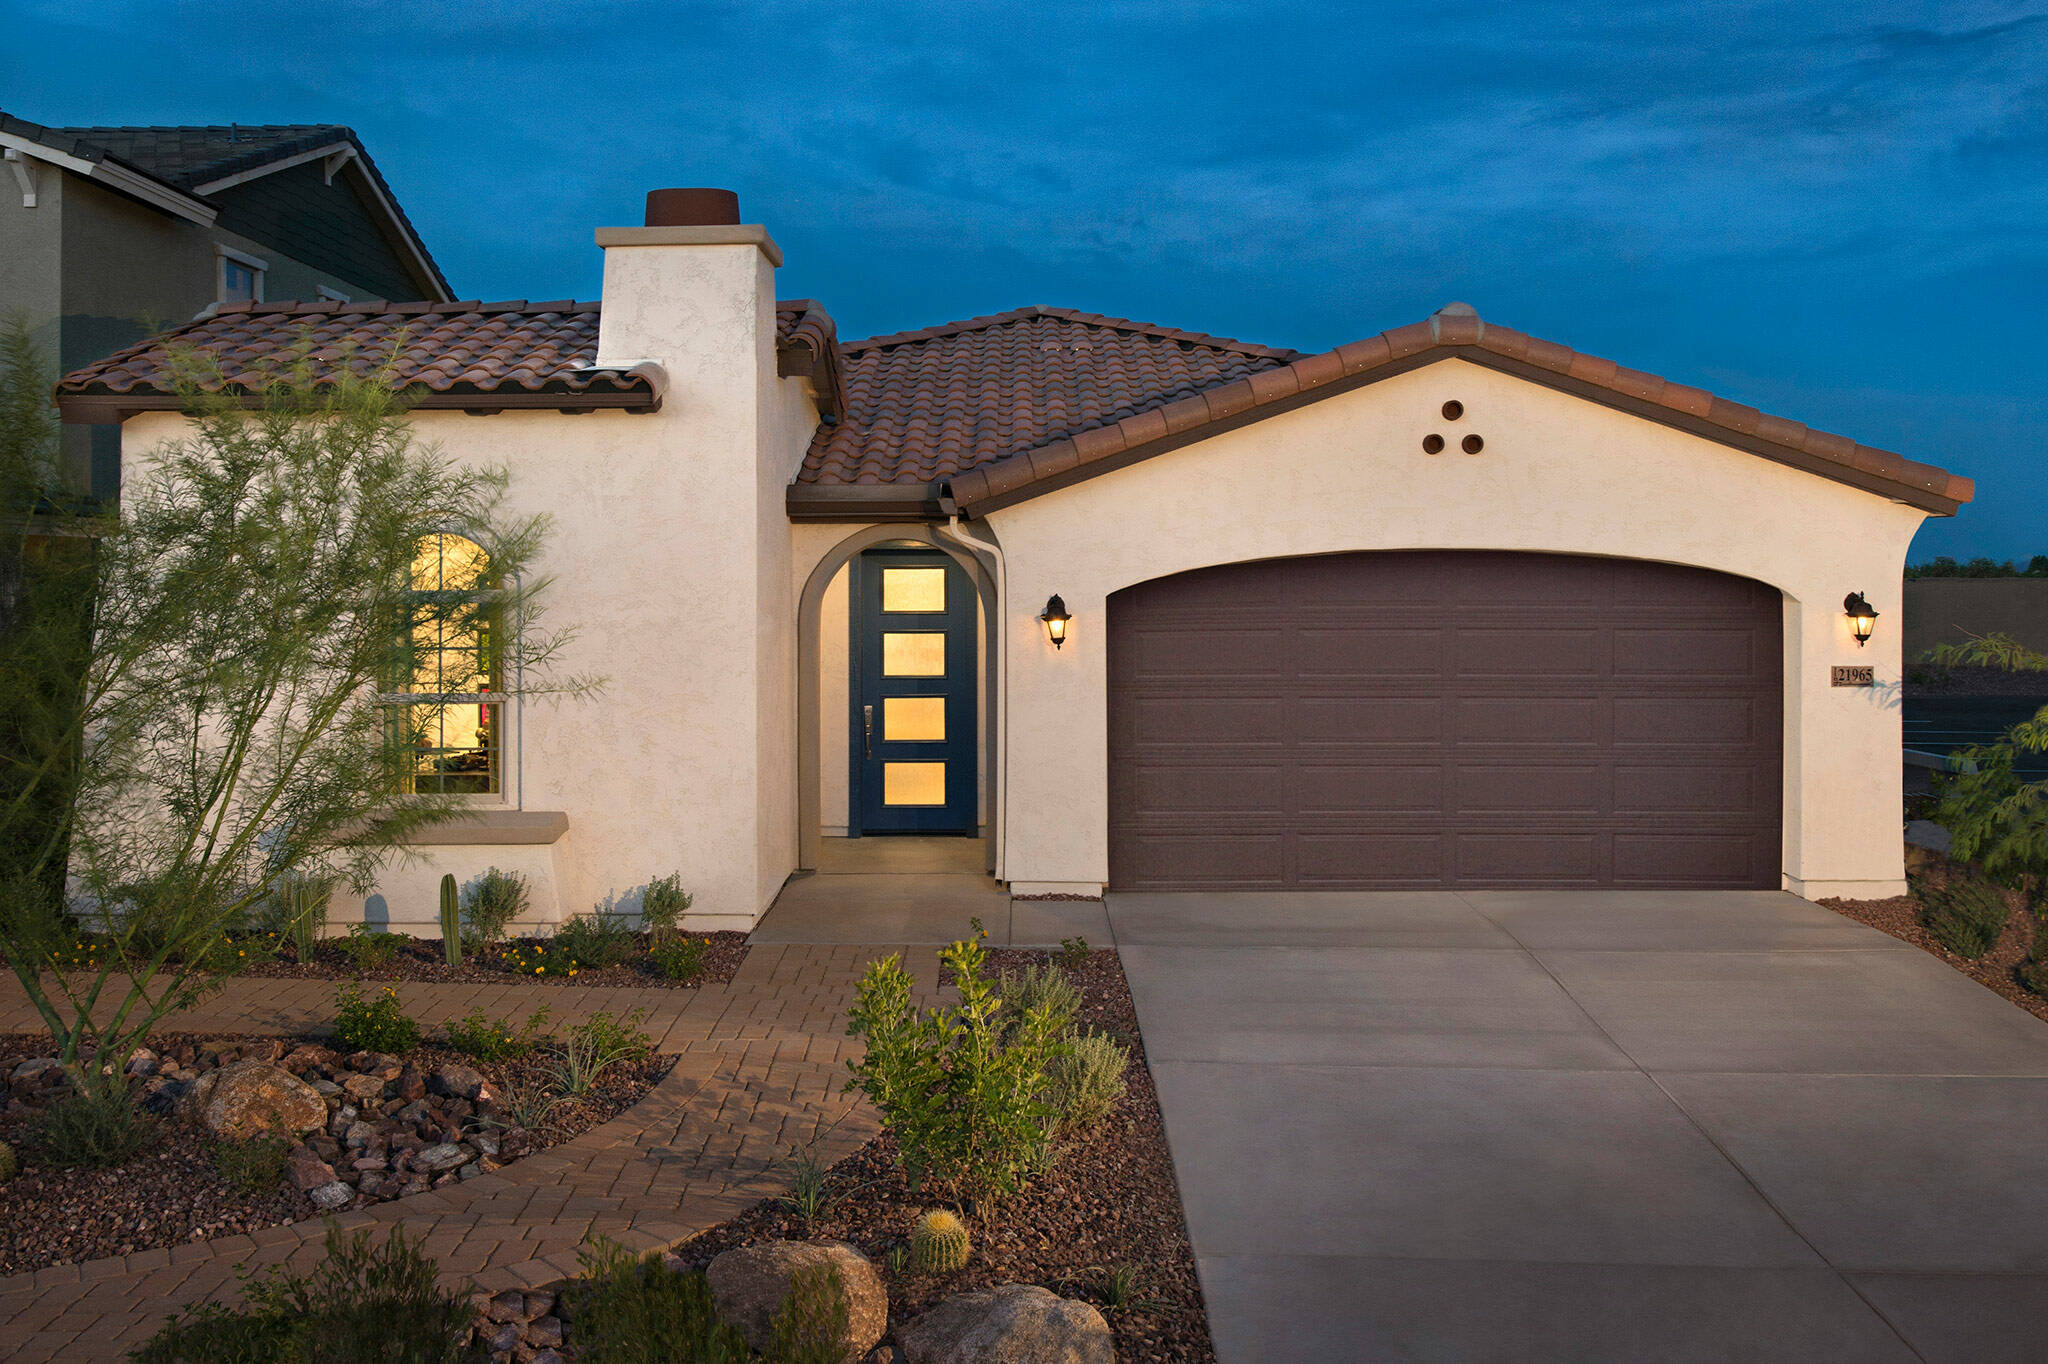 Build New Home traditions at catania - new homes in glendale, az